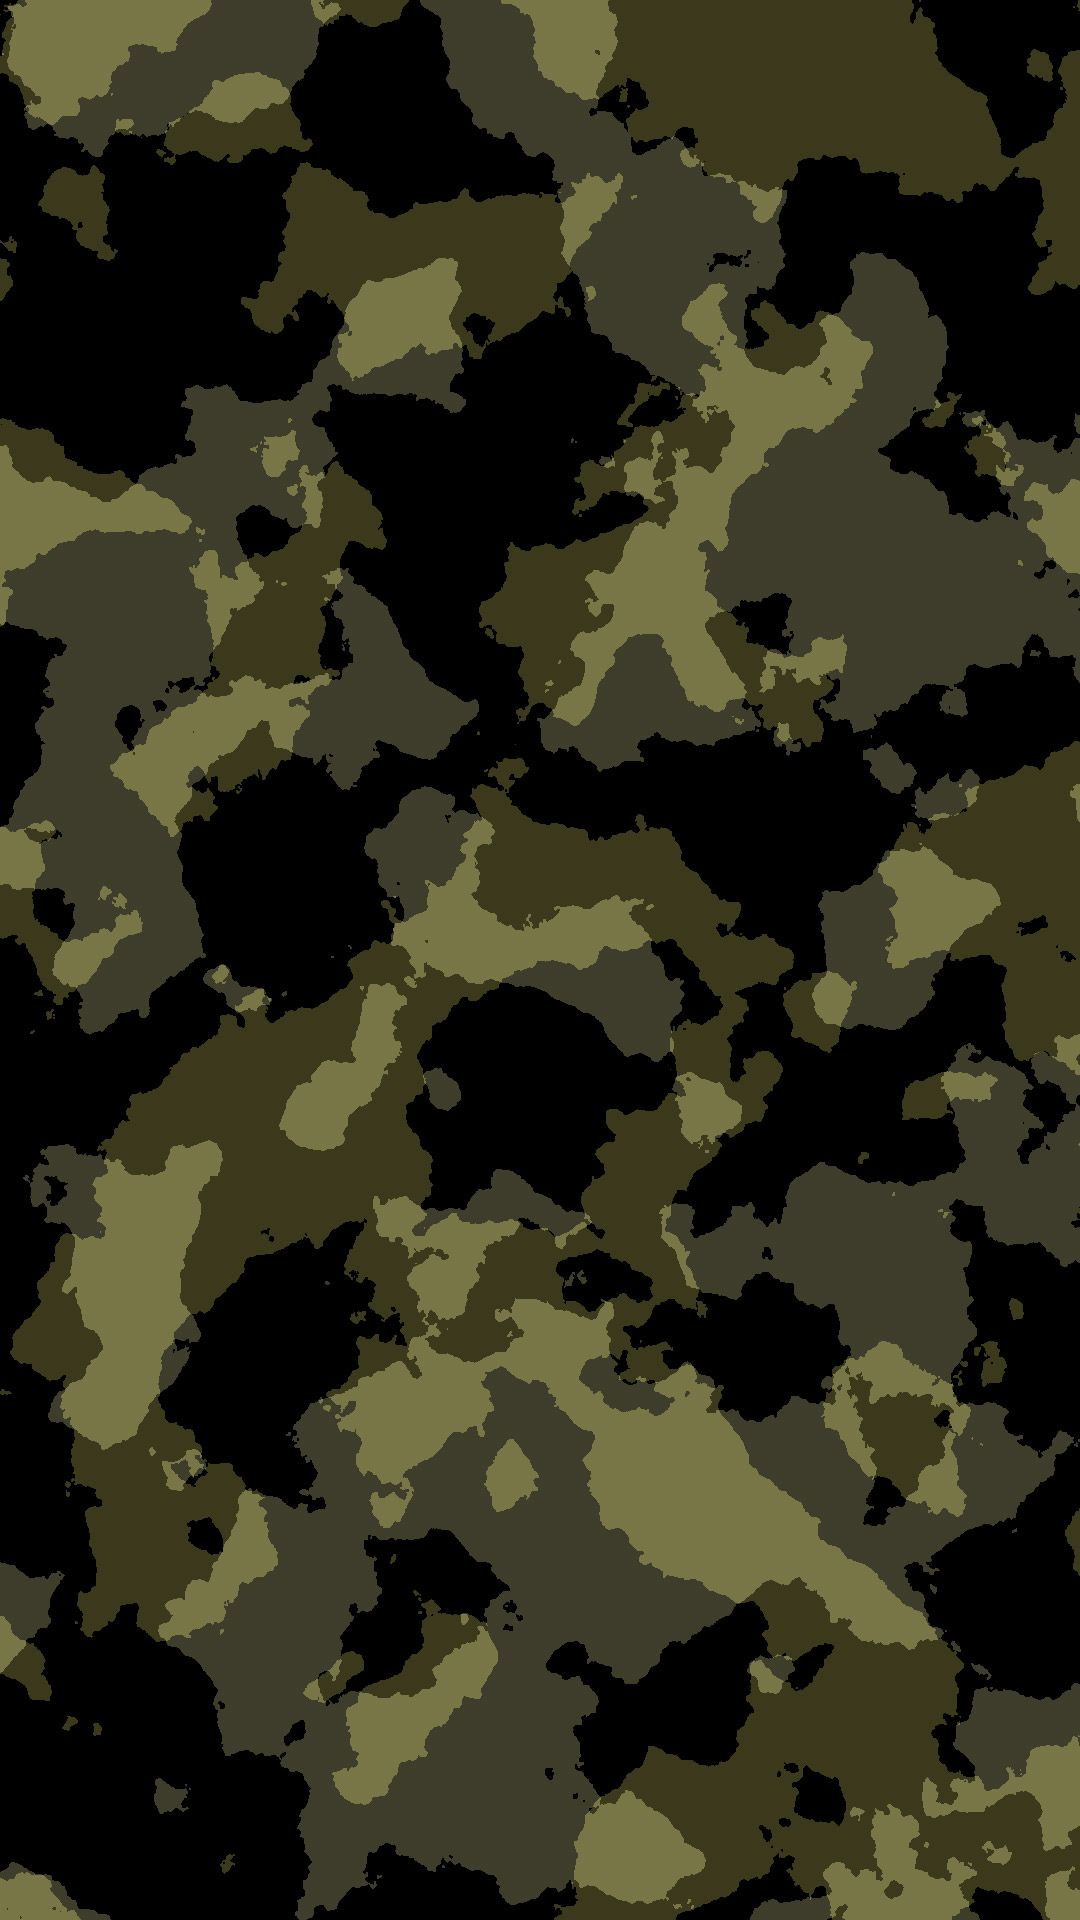 Free Photos Camo Iphone - Camouflage Hd Wallpaper For Android - HD Wallpaper